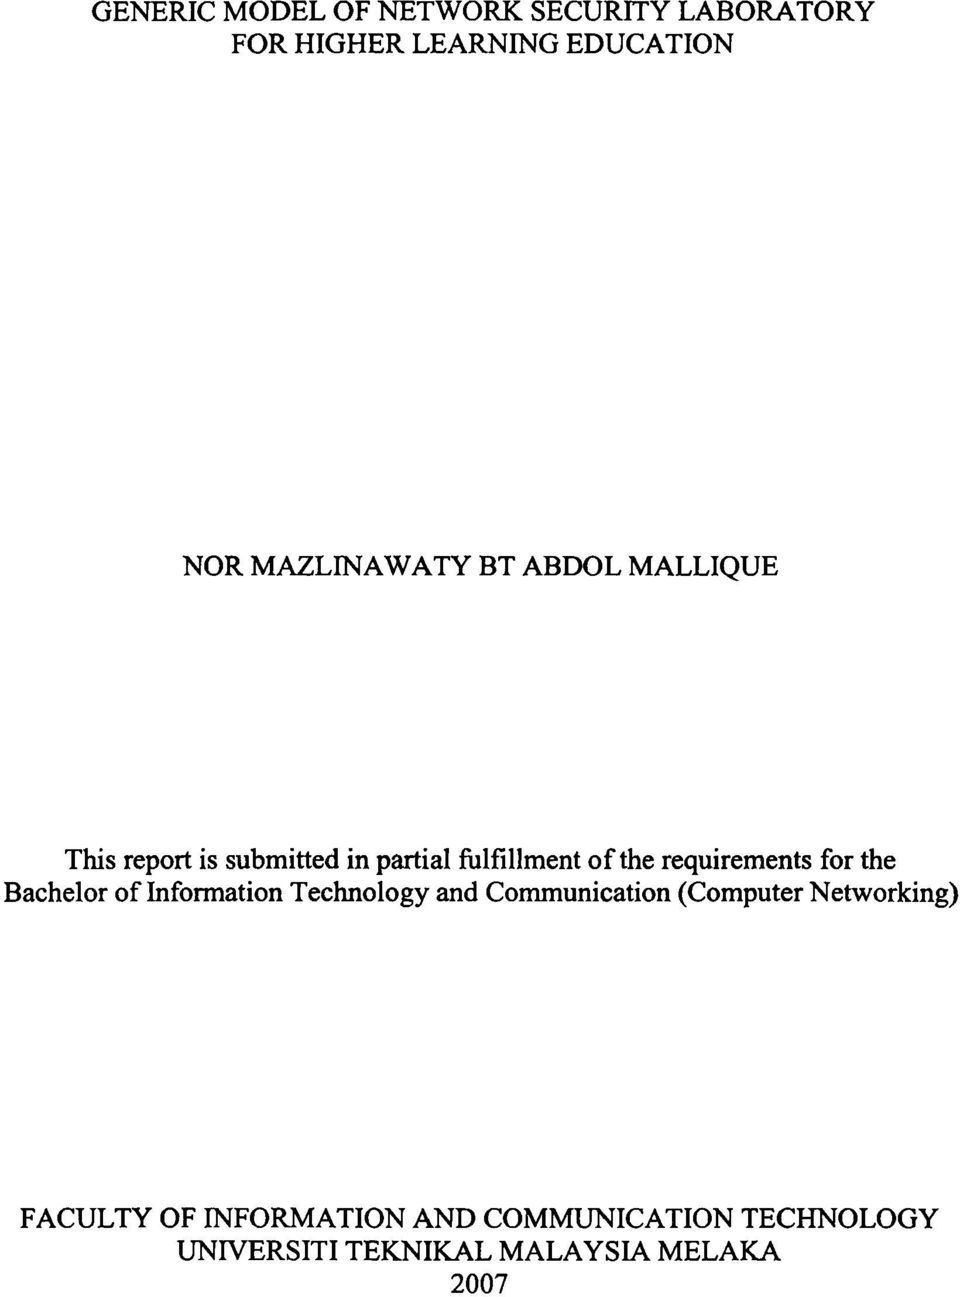 Requirements For The Bachelor Of Information Technology And Communication Computer